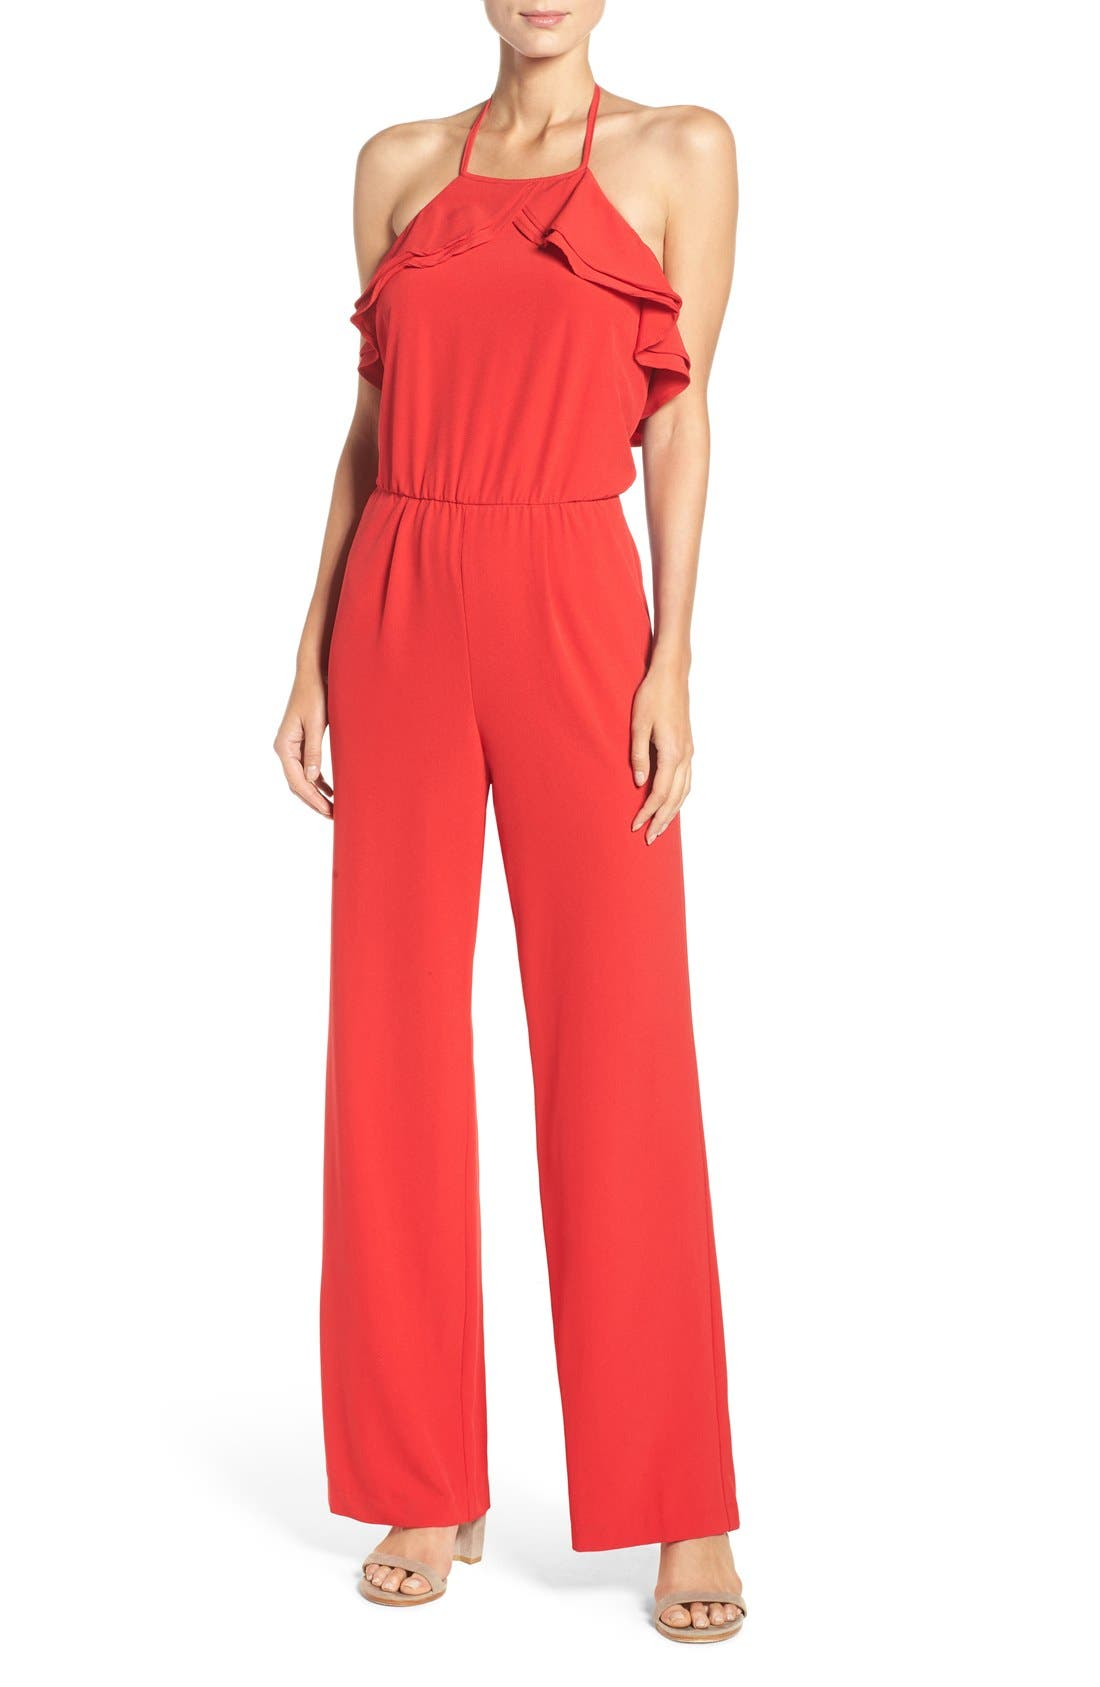 Ruffle Halter Jumpsuit,                         Main,                         color, Red